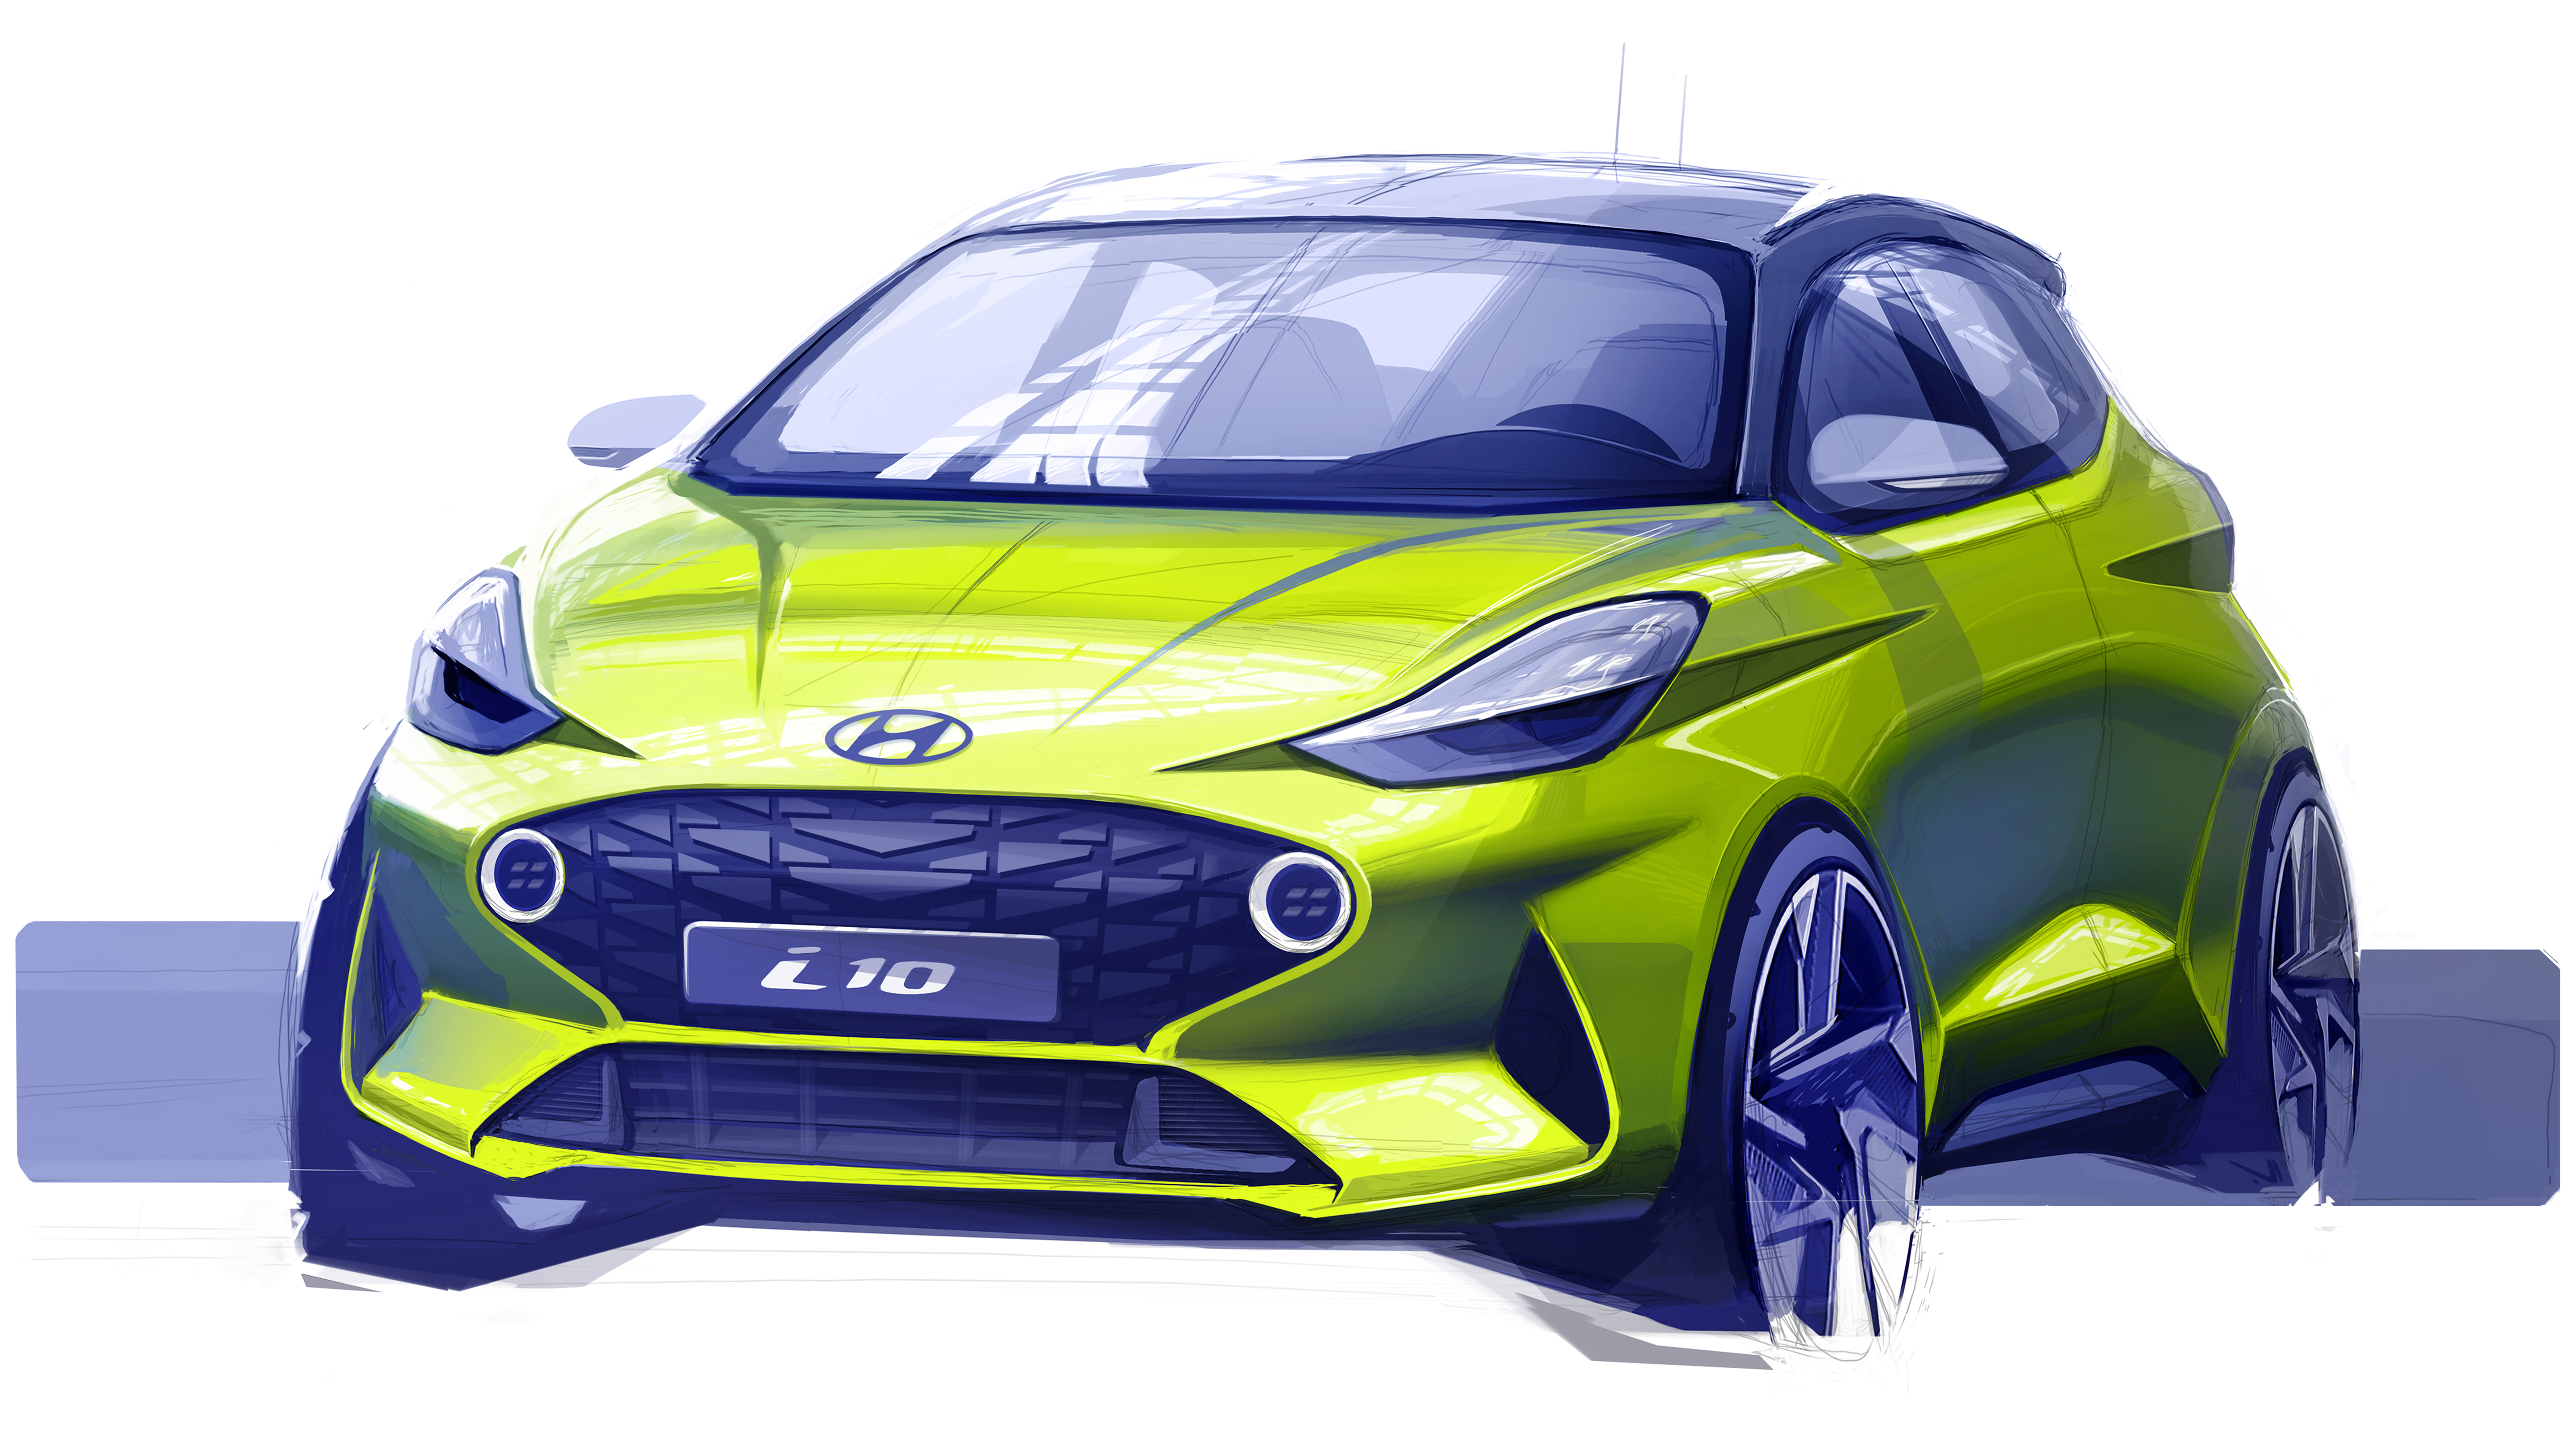 Next-gen Hyundai i10 Teased